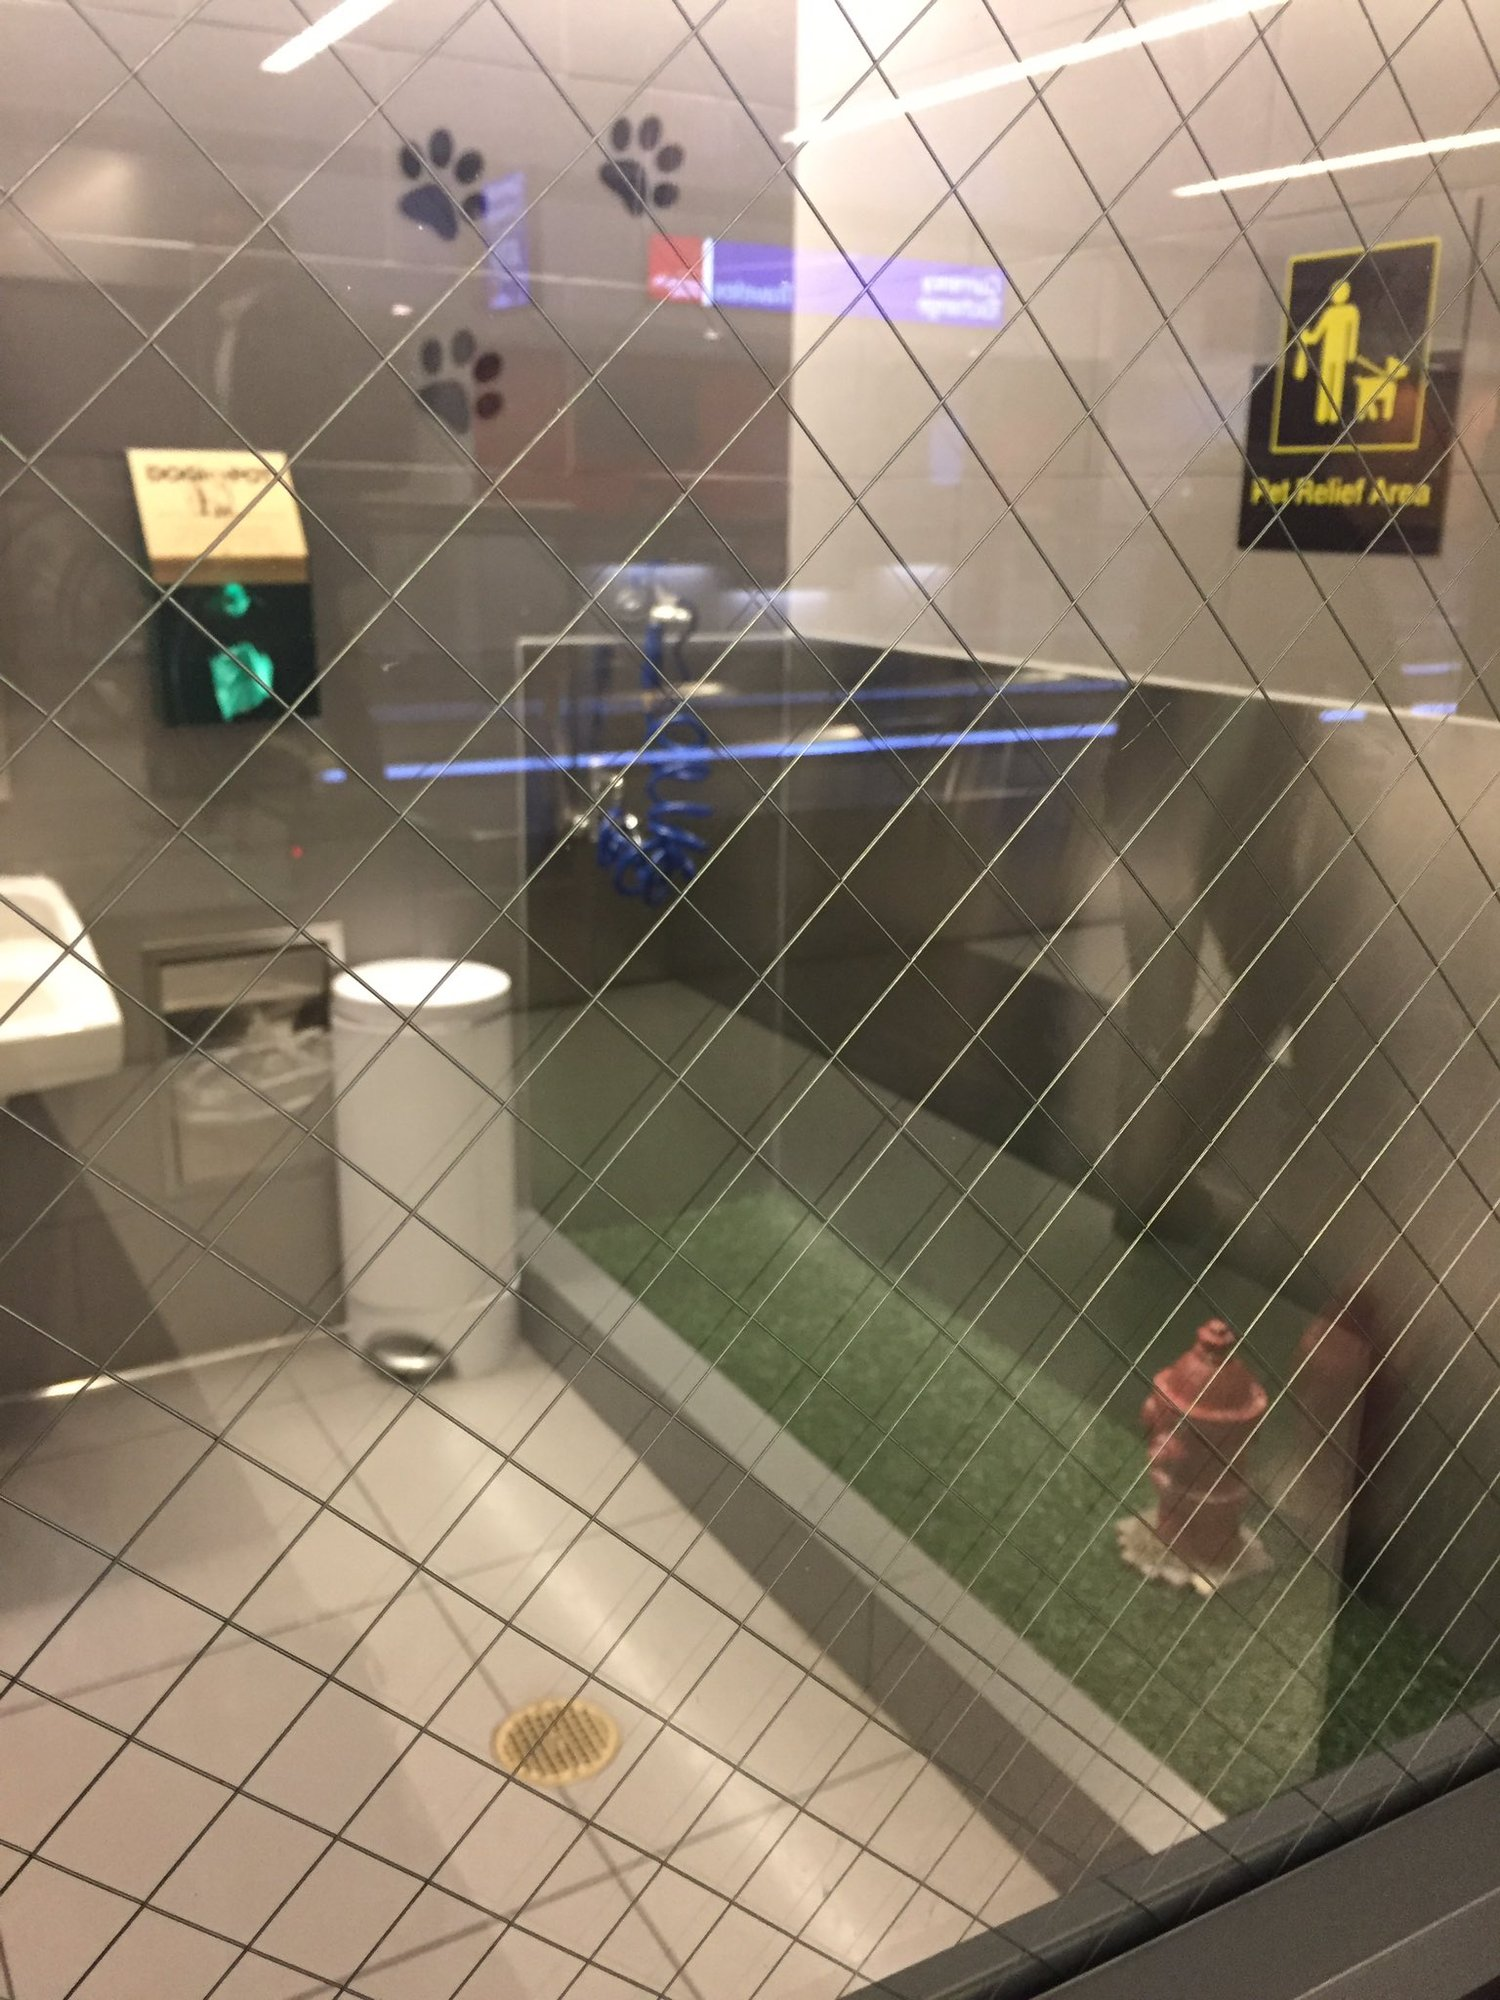 The dog bathroom at JFK is one of the cutest things ever. https://t.co/BciZEOHlmx